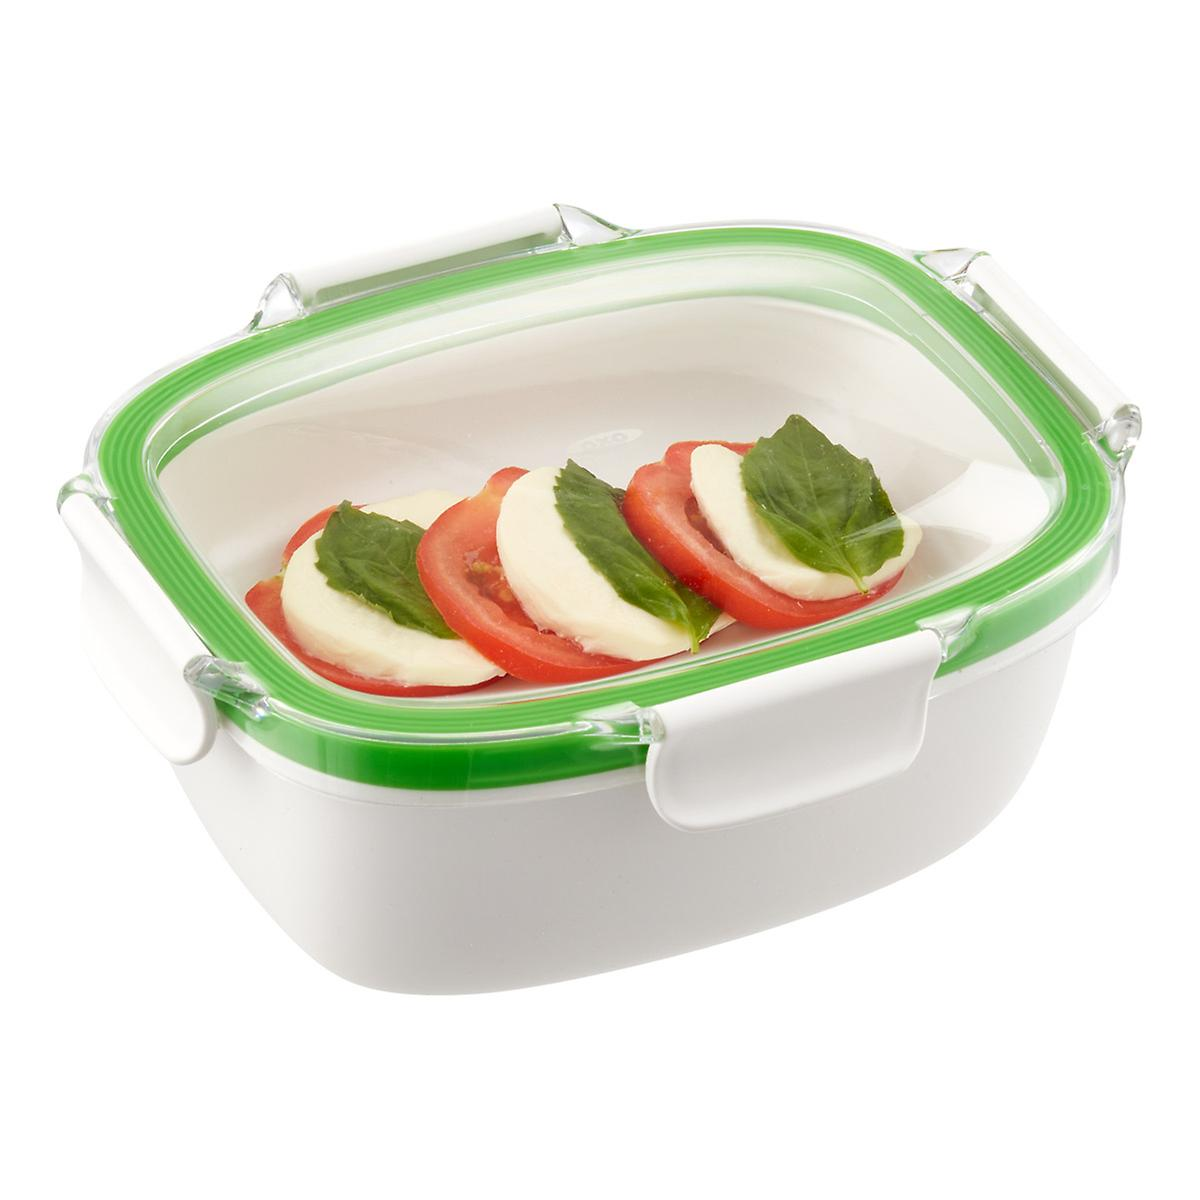 OXO Good Grips Round On-the-Go Lunch Container